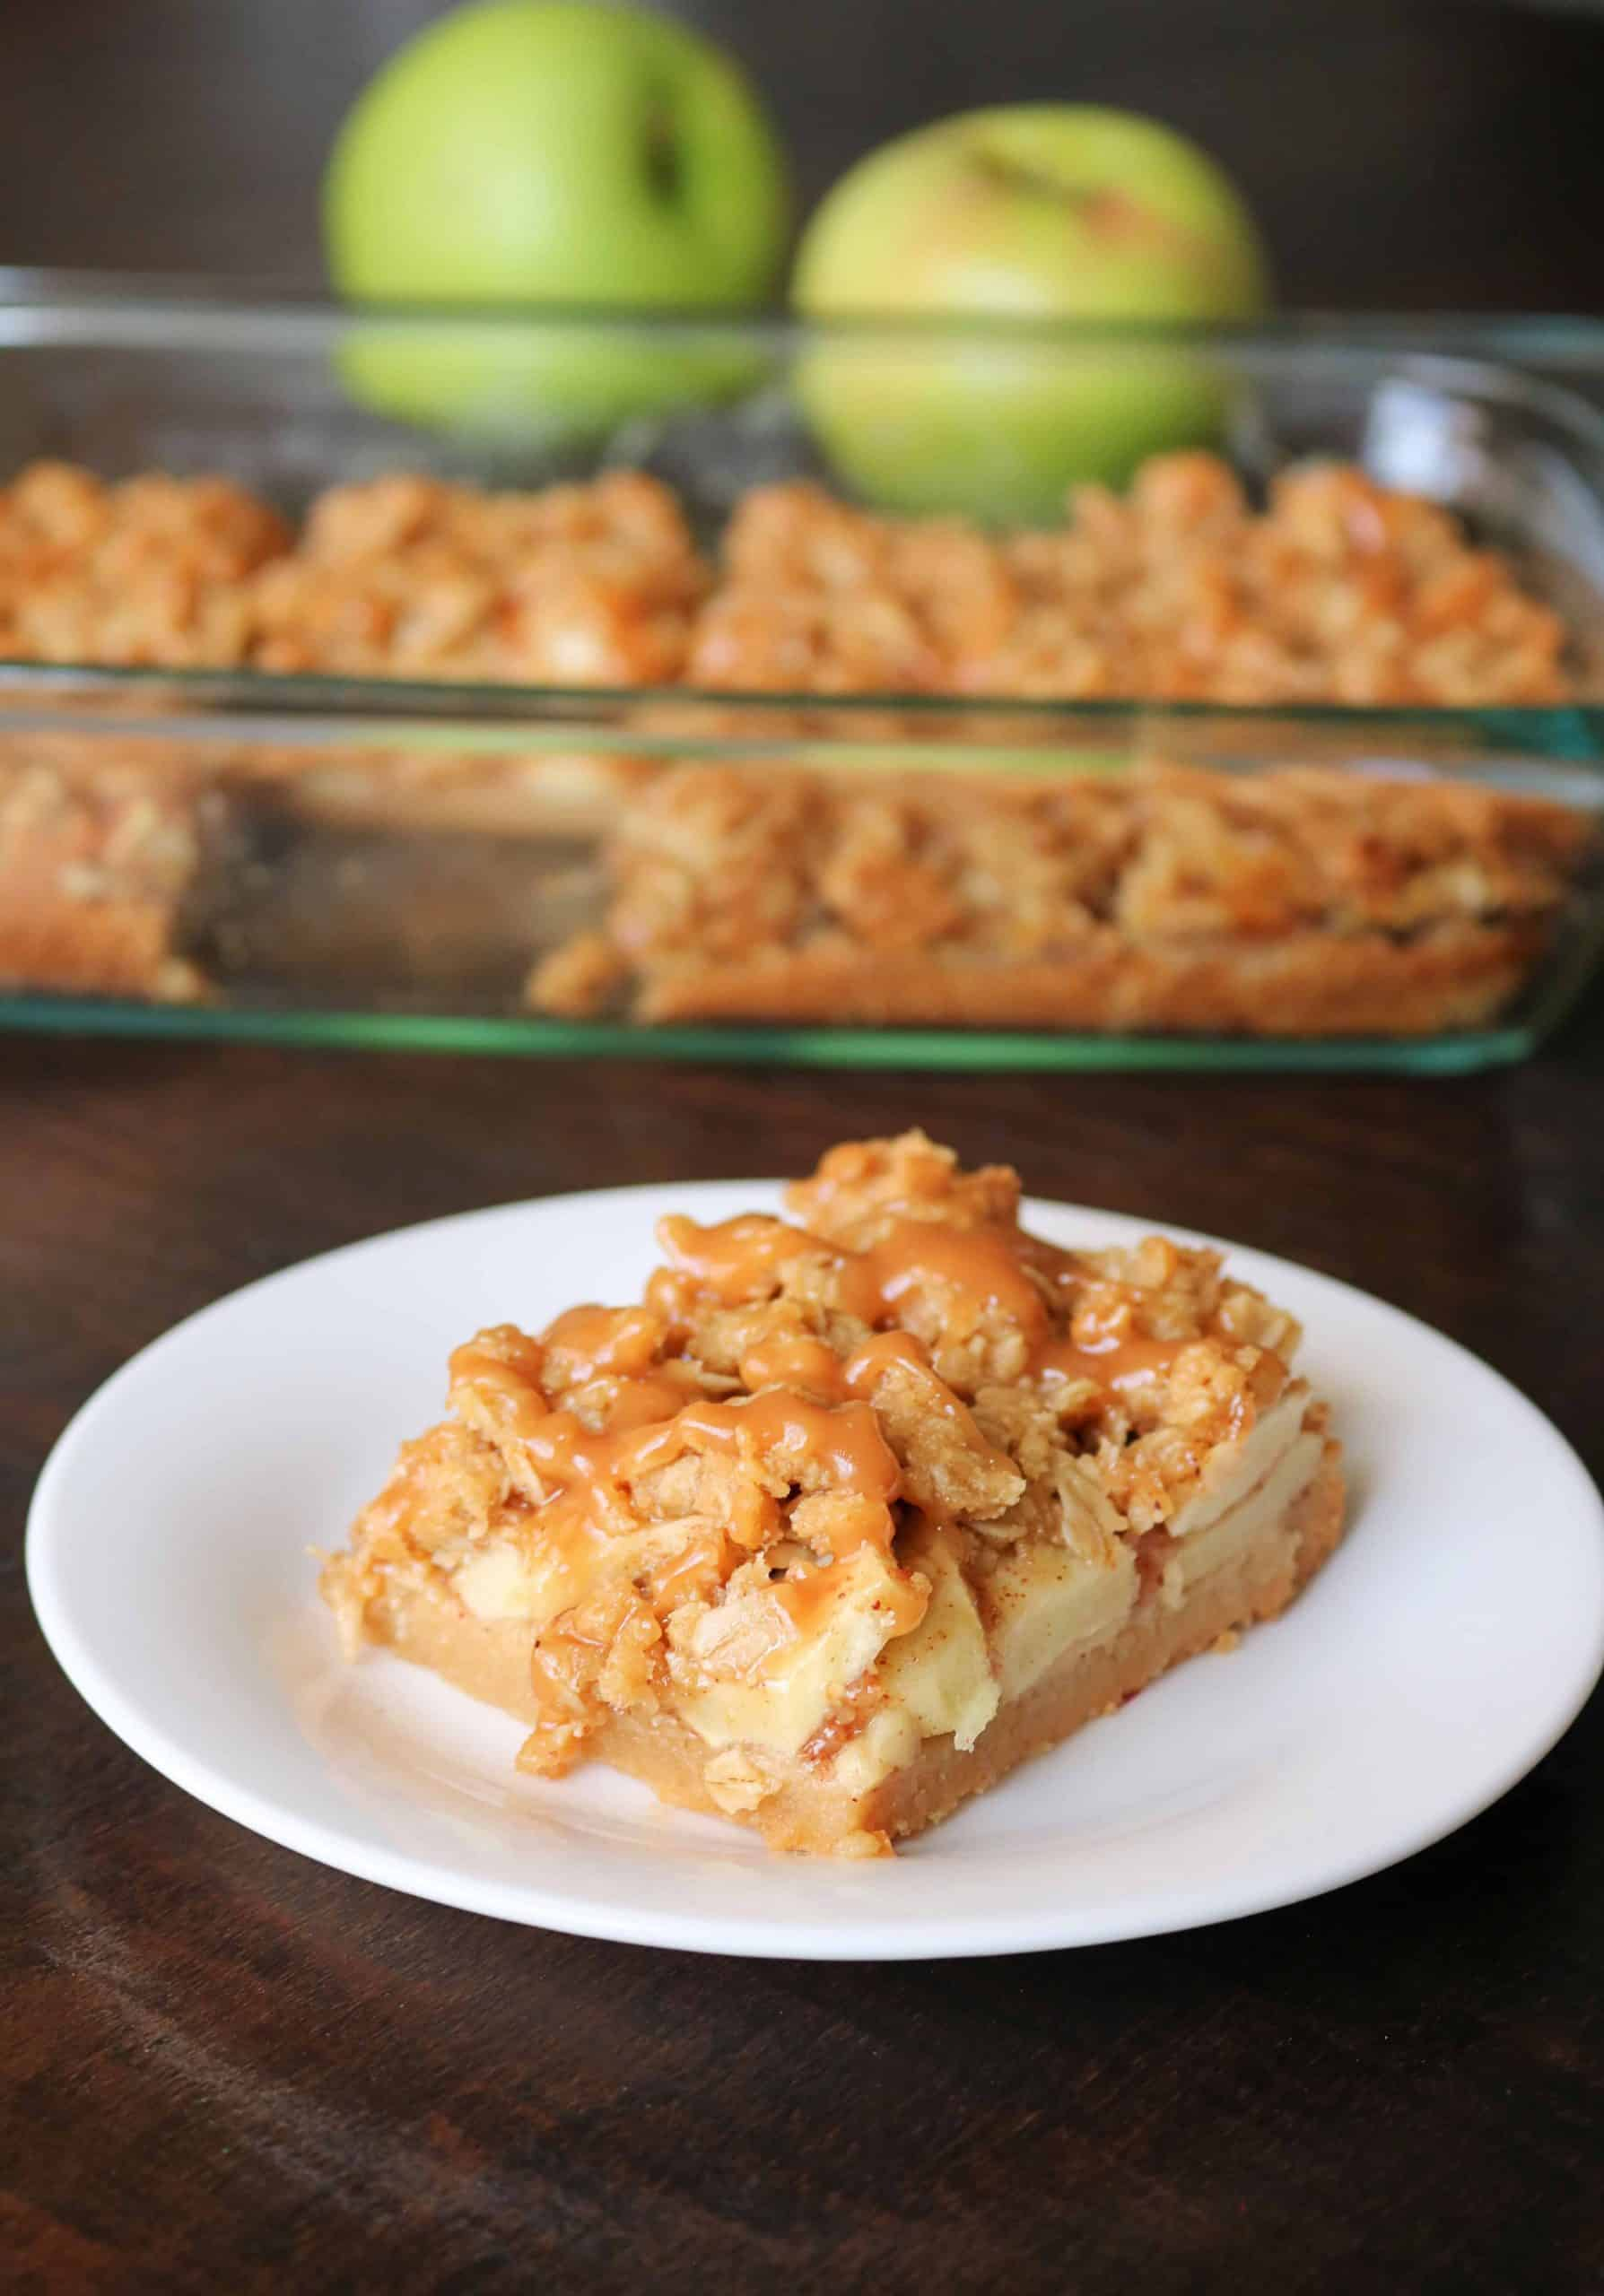 Try these Easy Salted Caramel Apple Pie Bars for a delicious fall or Thanksgiving dessert!  These caramel apple pie bars have a buttery shortbread crust and are made with granny smith apples, a brown sugar-cinnamon oat streusel topping, and are drizzled with an easy homemade salted caramel sauce. The most delicious apple pie bar you'll ever eat! #applepiebars #applepie #saltedcaramel #caramelapple #falldessert